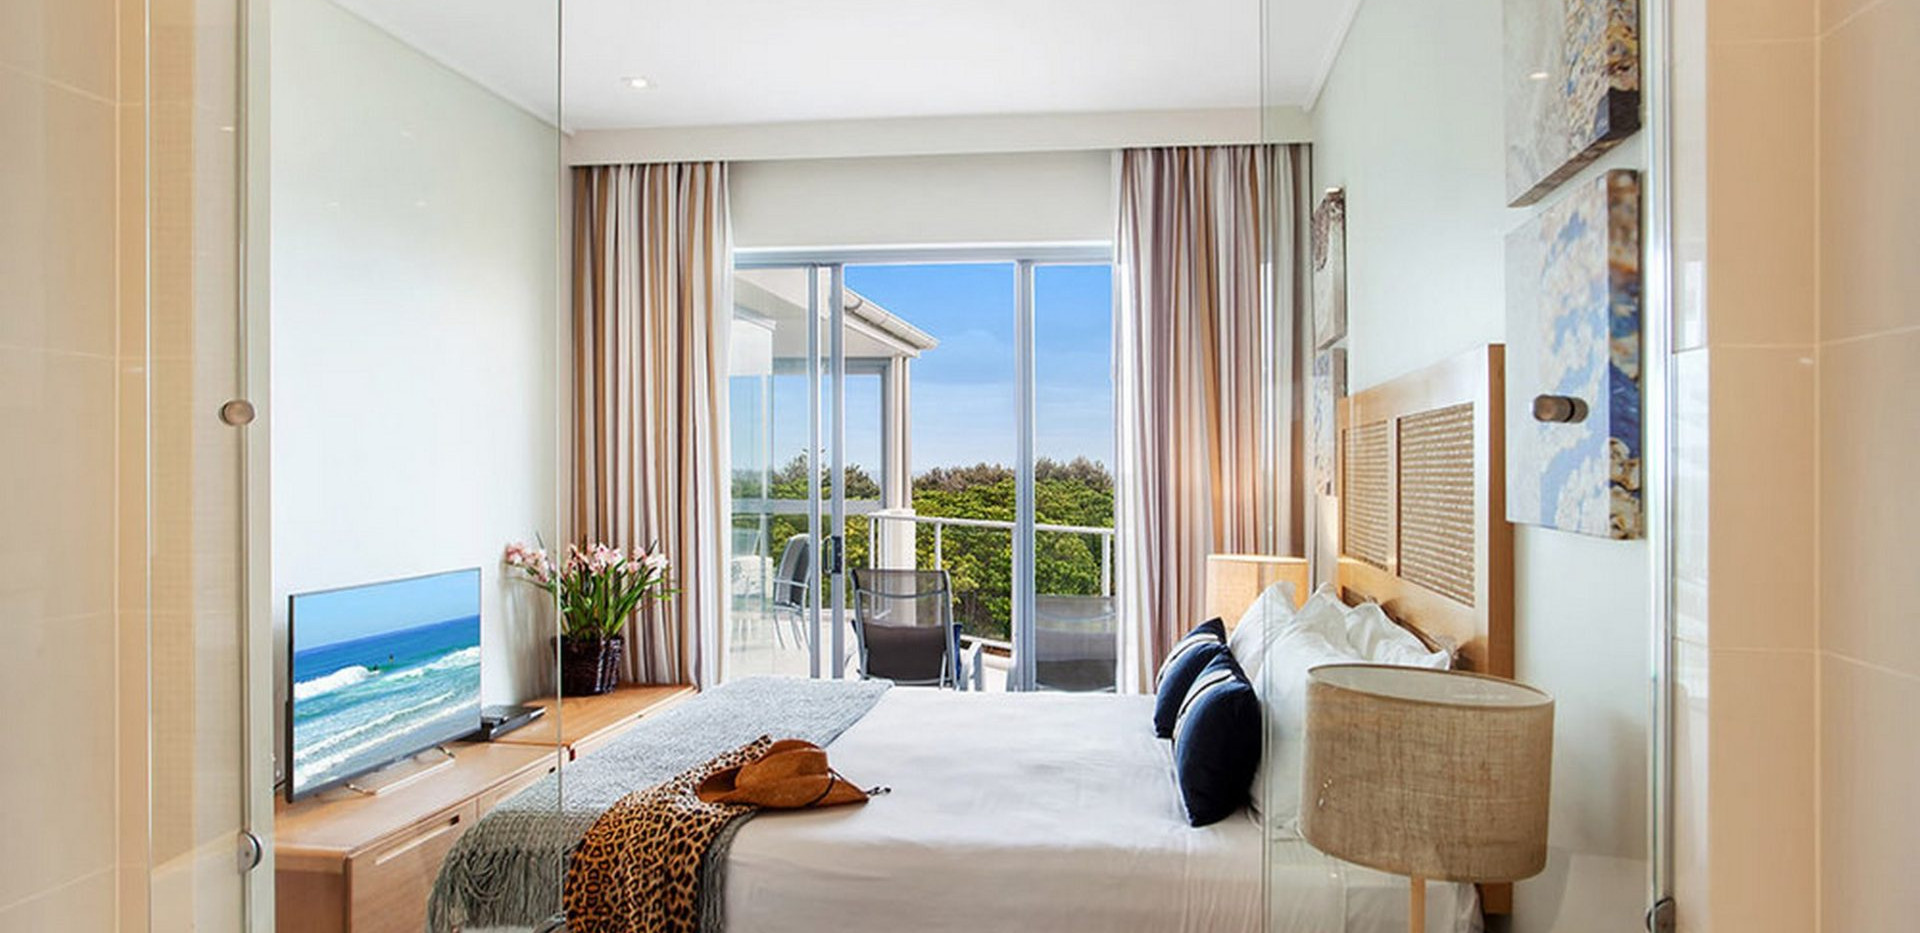 Master Bedroom - View from Spa Bath